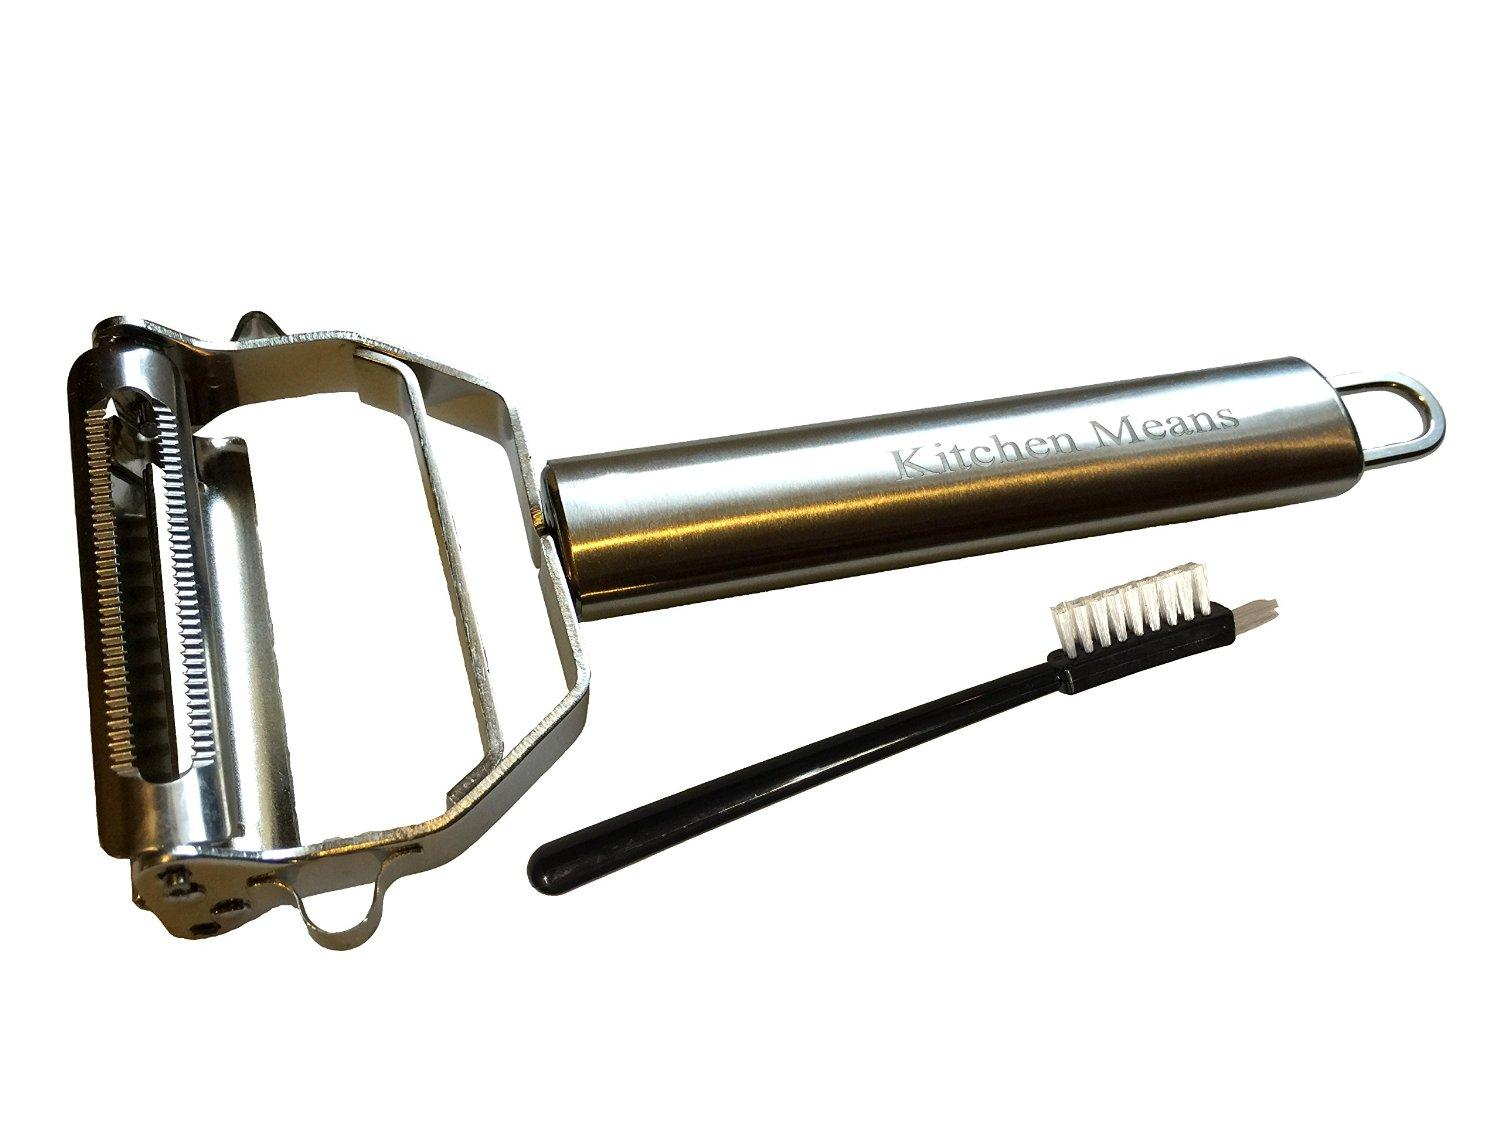 Kitchen Means Ultra Sharp Stainless Steel Julienne and Vegetable Peeler Cleaning Brush Included